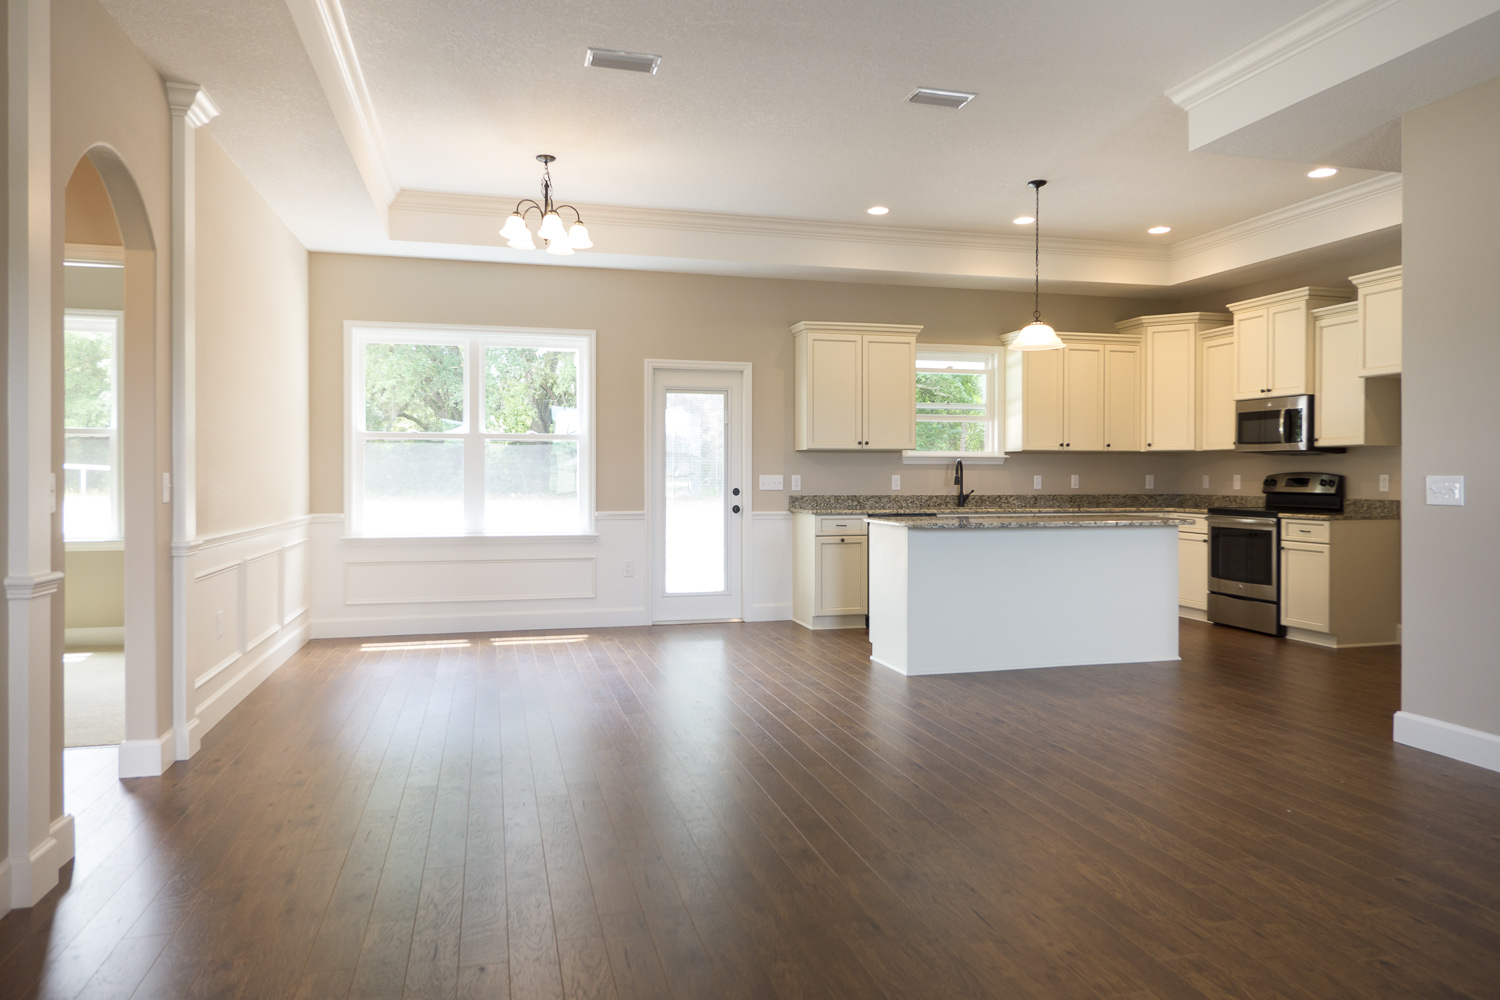 Wainscoting Dining Room What Is Wainscoting Gainesville Fl Real Estate With